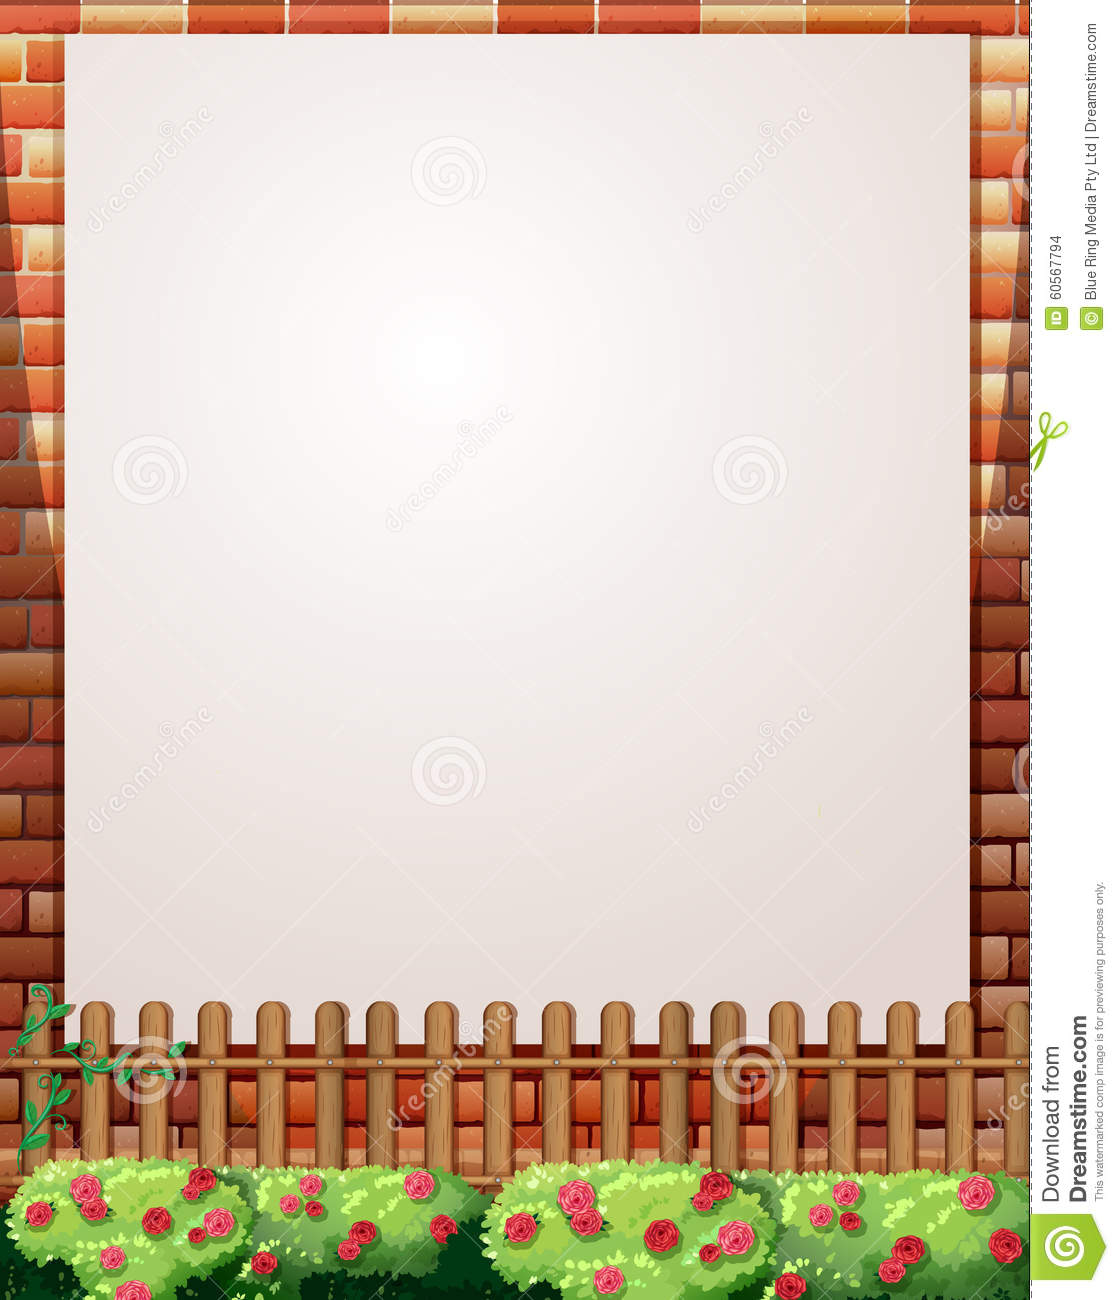 Border Wall Clipart 20 Free Cliparts Download Images On